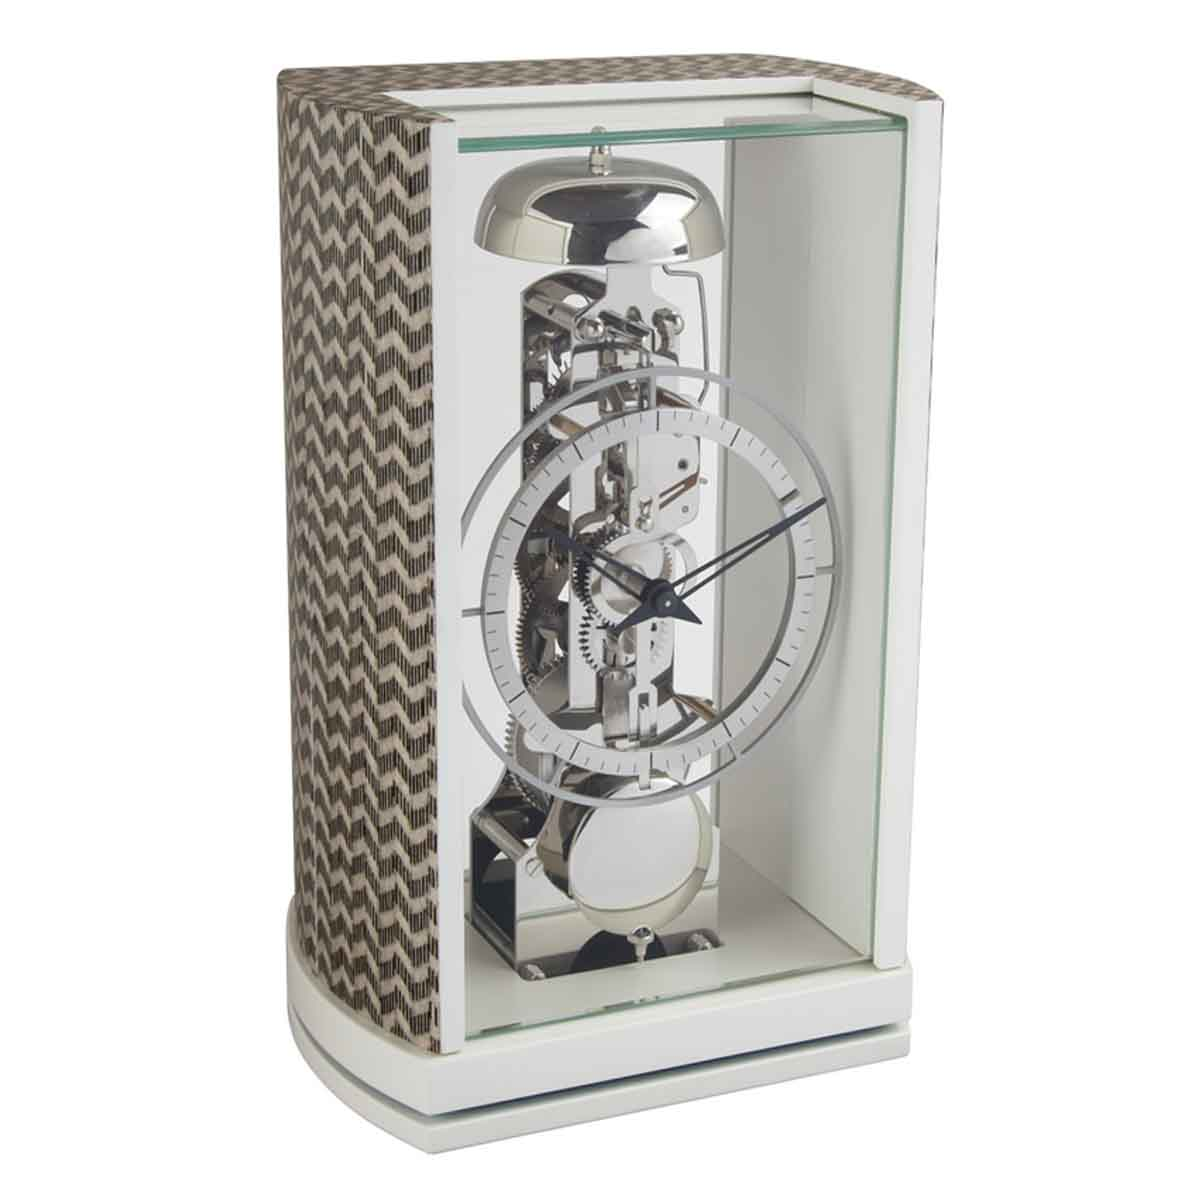 Hermle MARCH 23050-R10791 Silver-black Table Clock